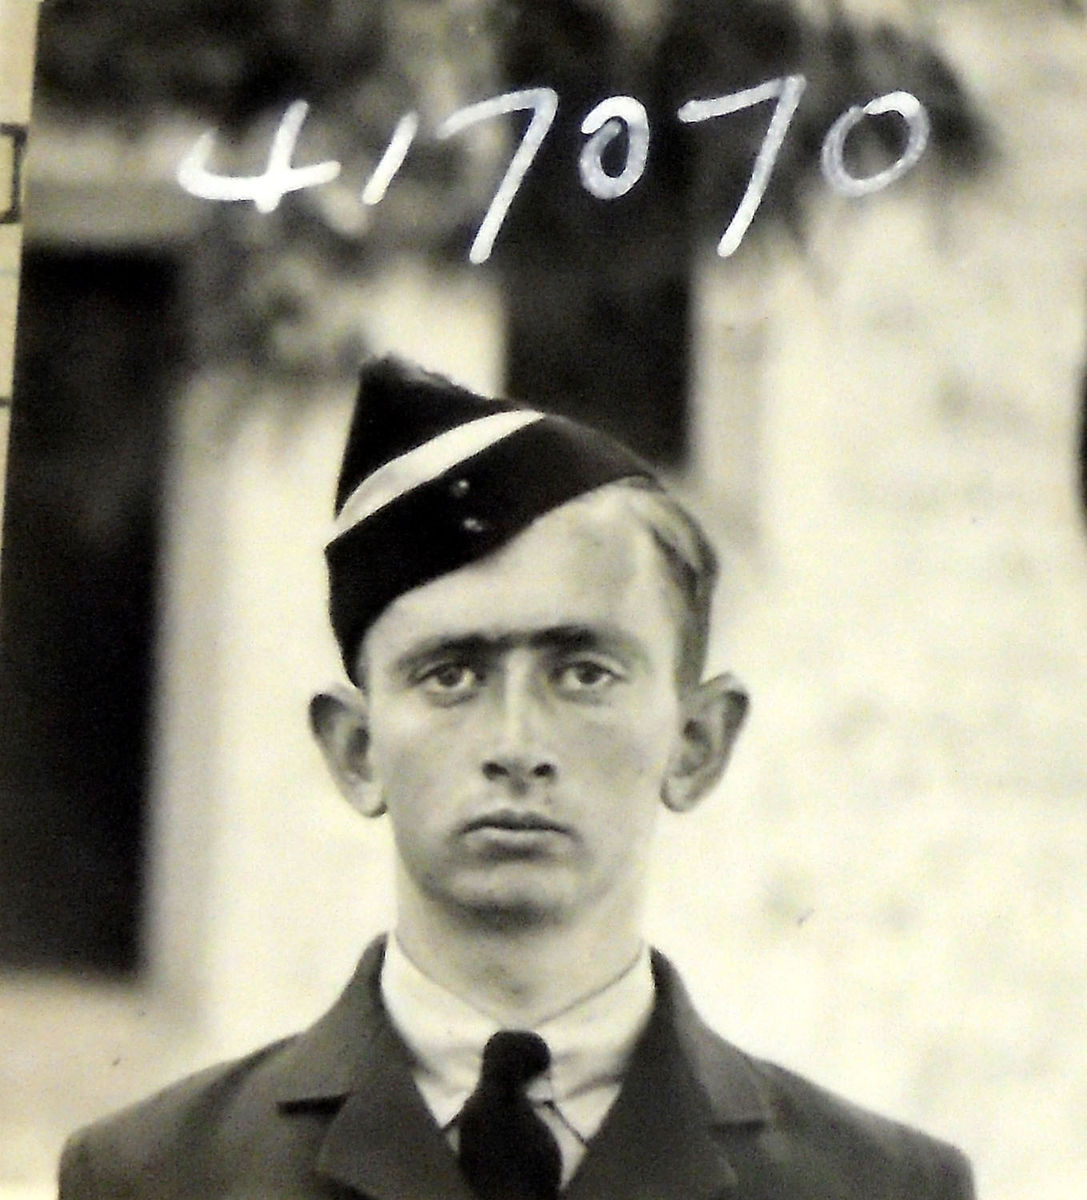 1WAGS - GRANT Clive Douglas - Service Number 417070